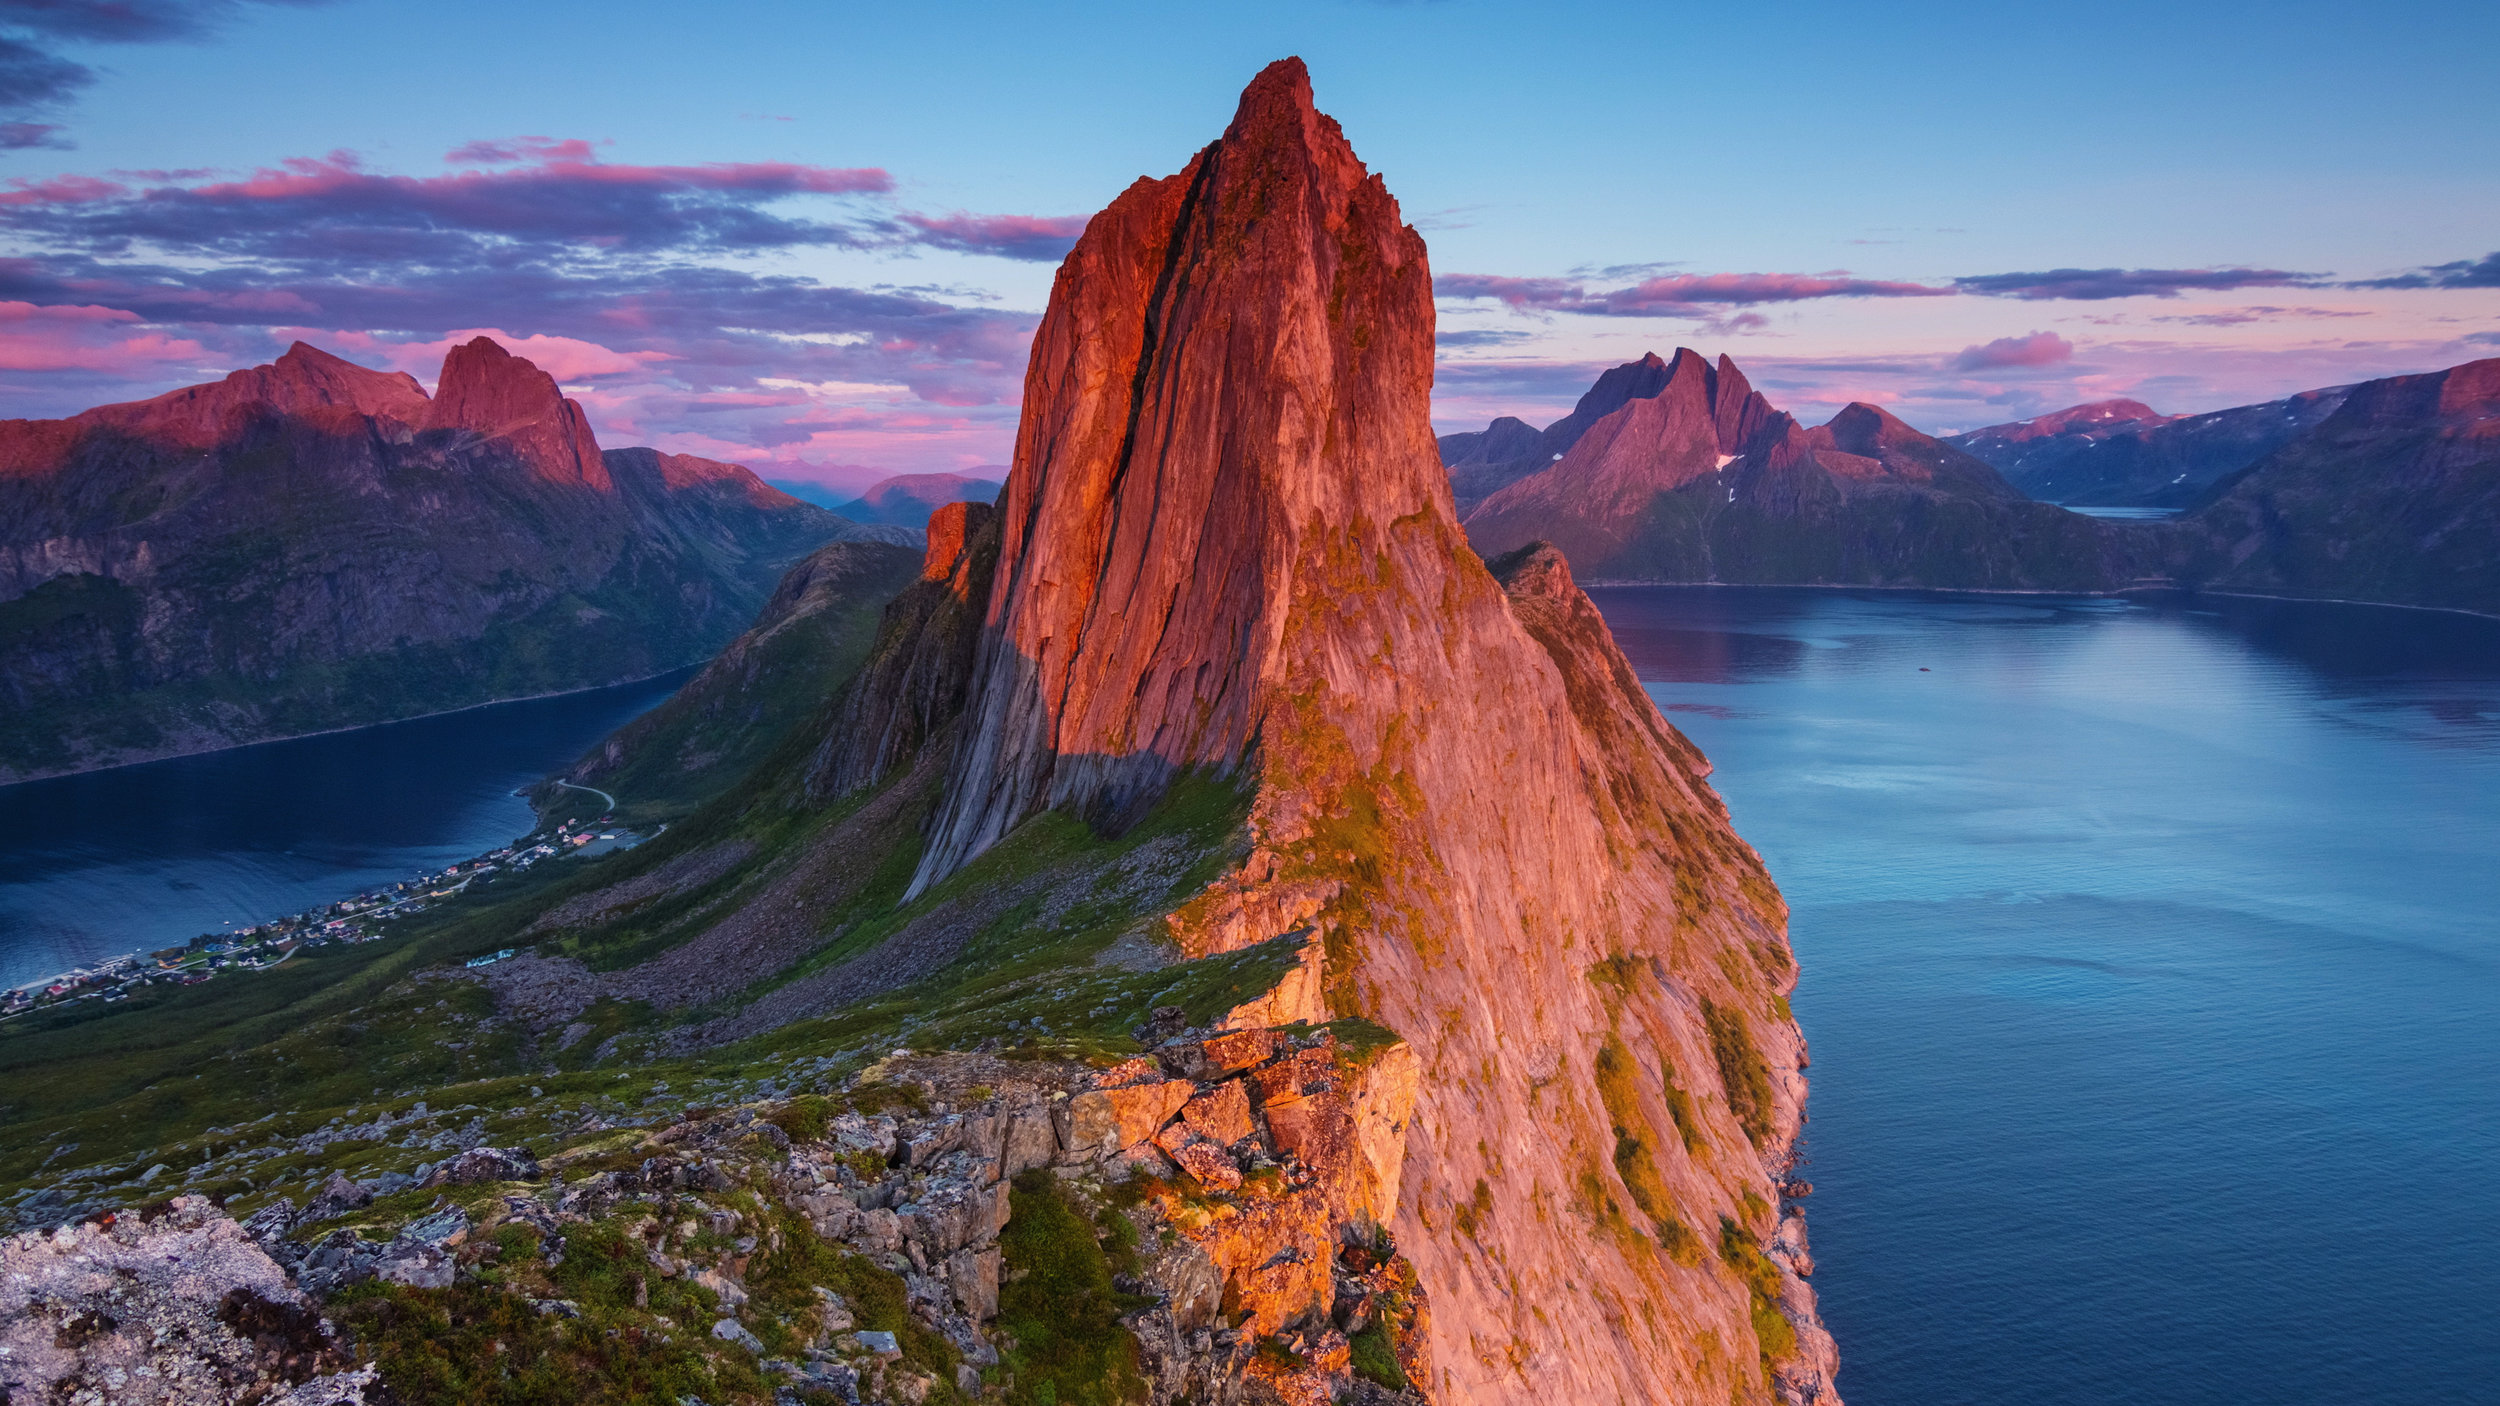 NORWAY - A TIME-LAPSE ADVENTURE IN 4K